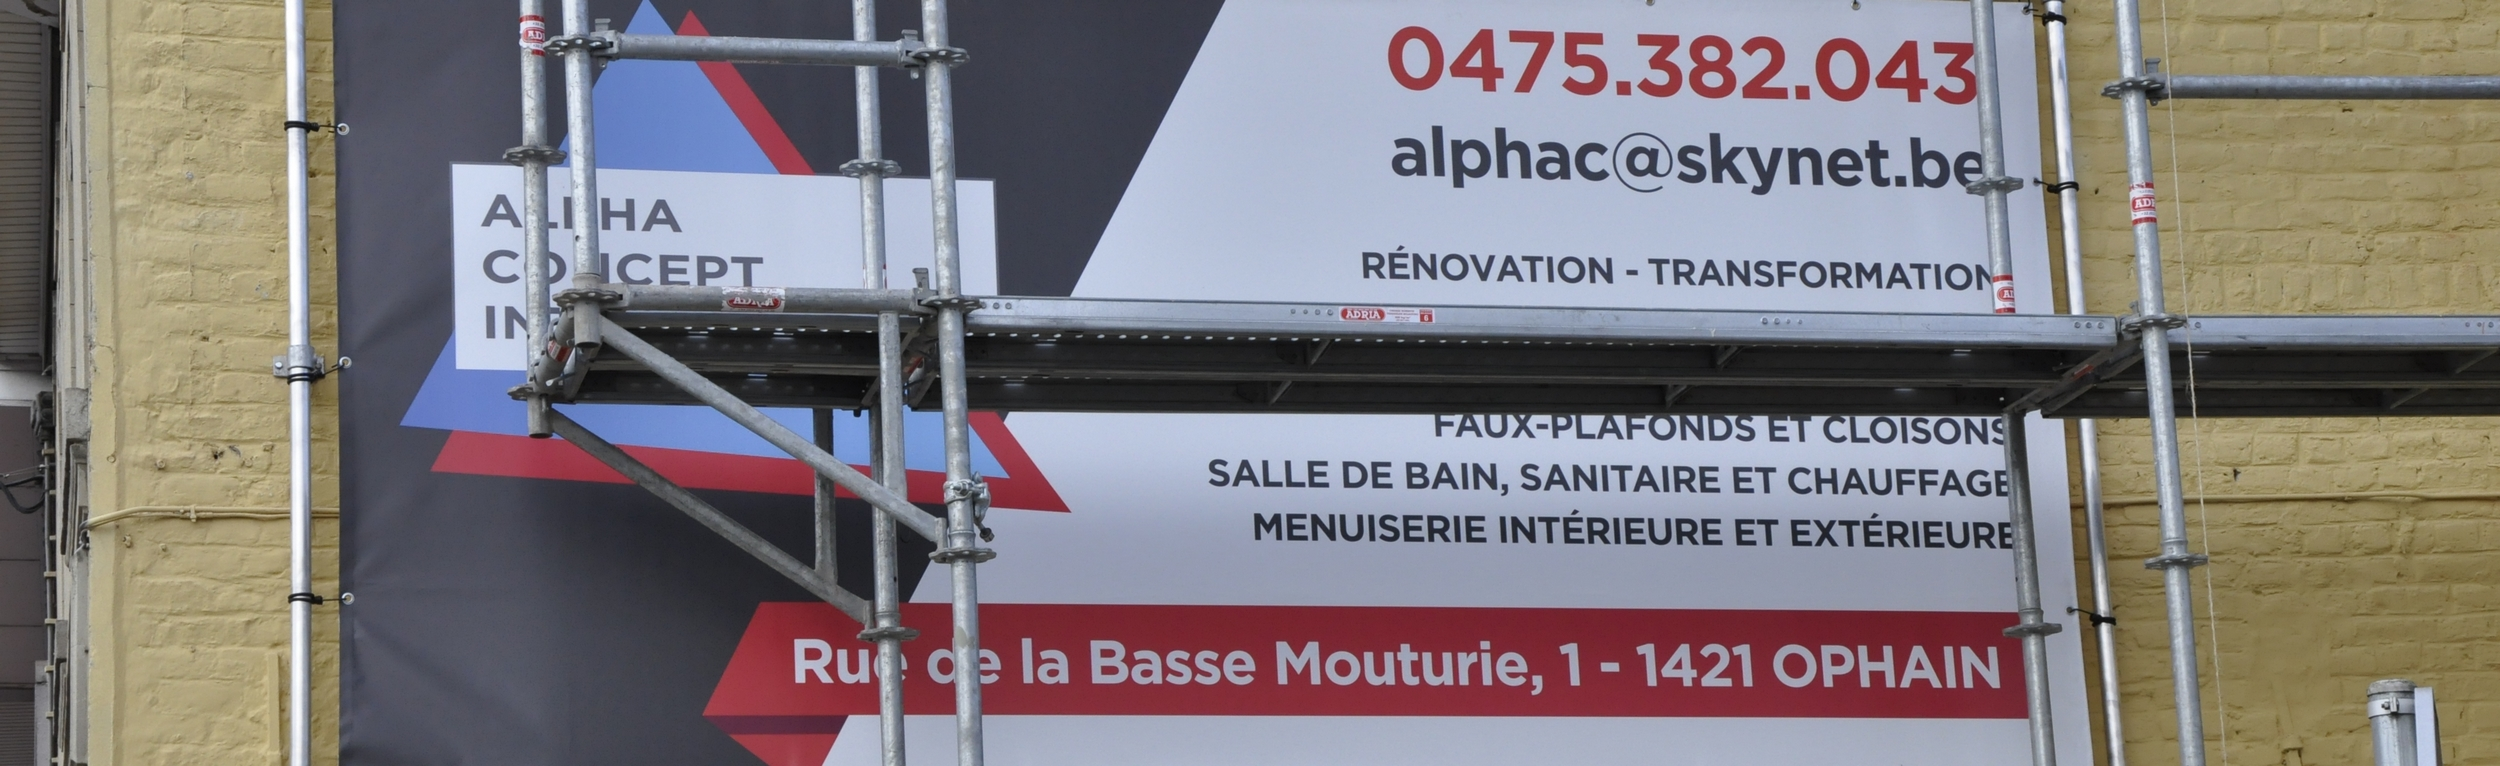 affiche de alpha concept international